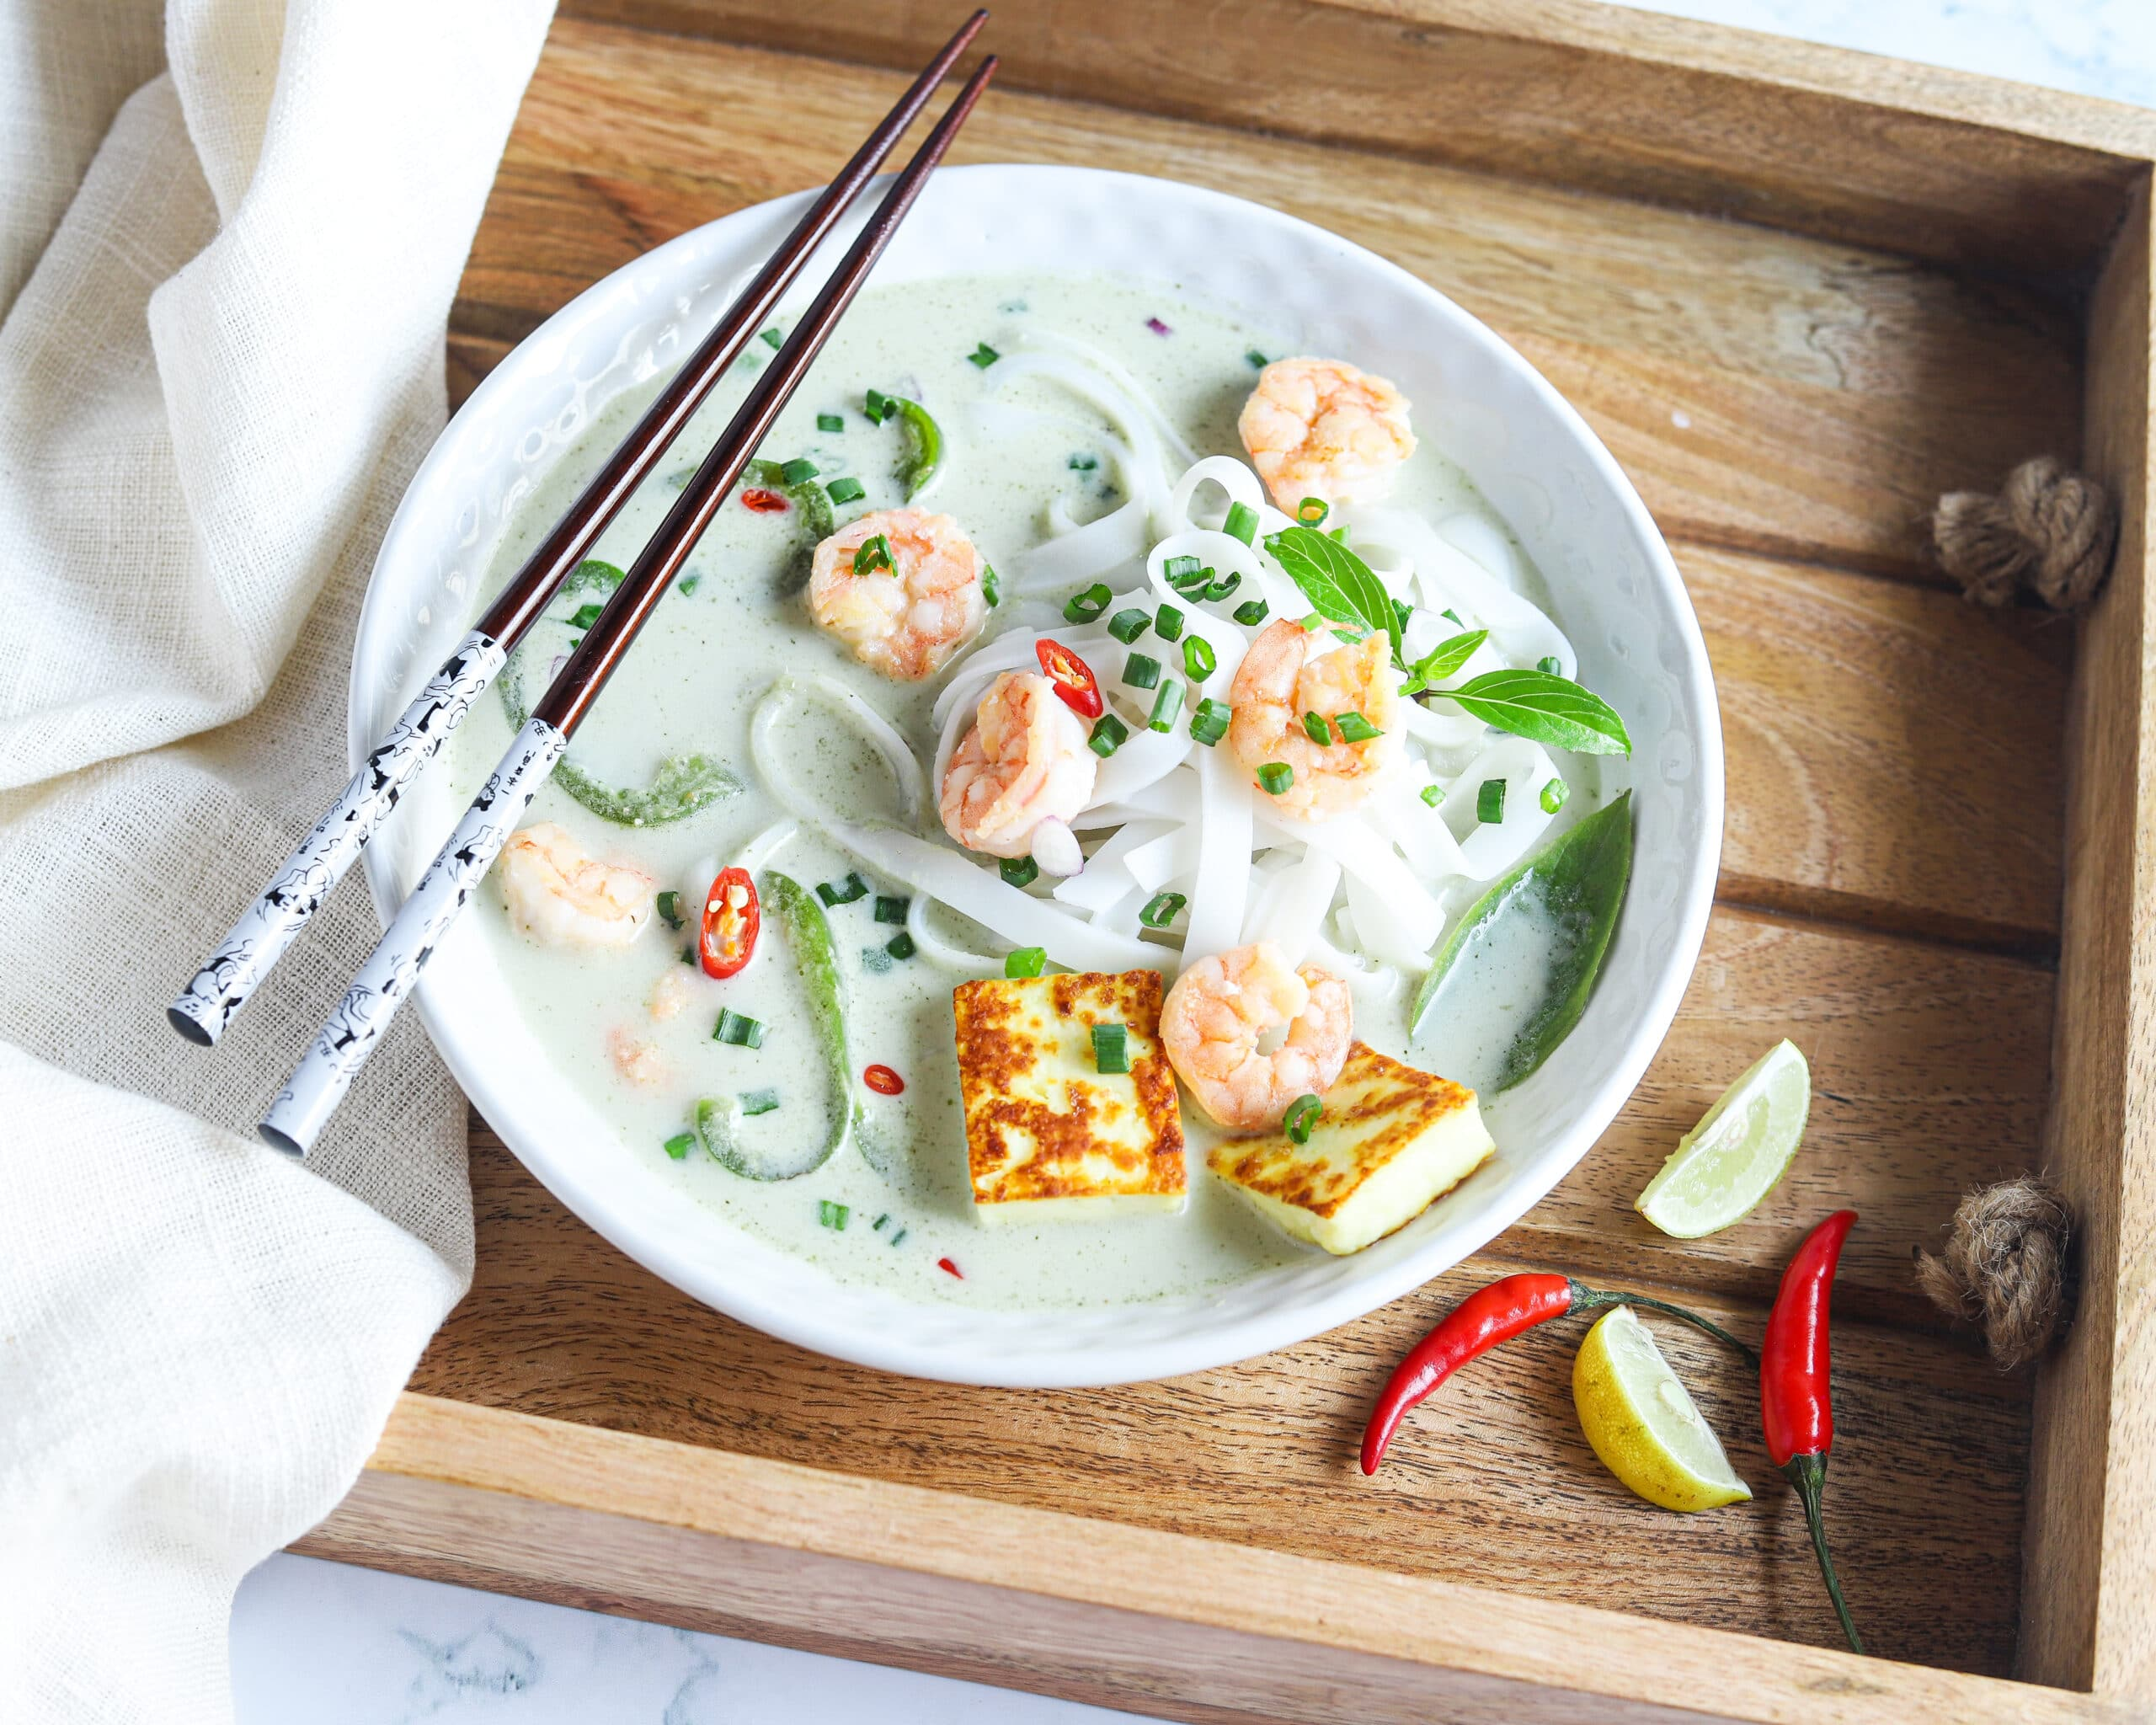 Thai Green Curry Noodles in Tray. These Thai Green Curry Noodles boast a flavorful broth made with coconut milk and fresh ingredients. Fill your bowl with fresh veggies, shrimp, tofu, and rice noodles for a flavorful easy weeknight dinner recipe.